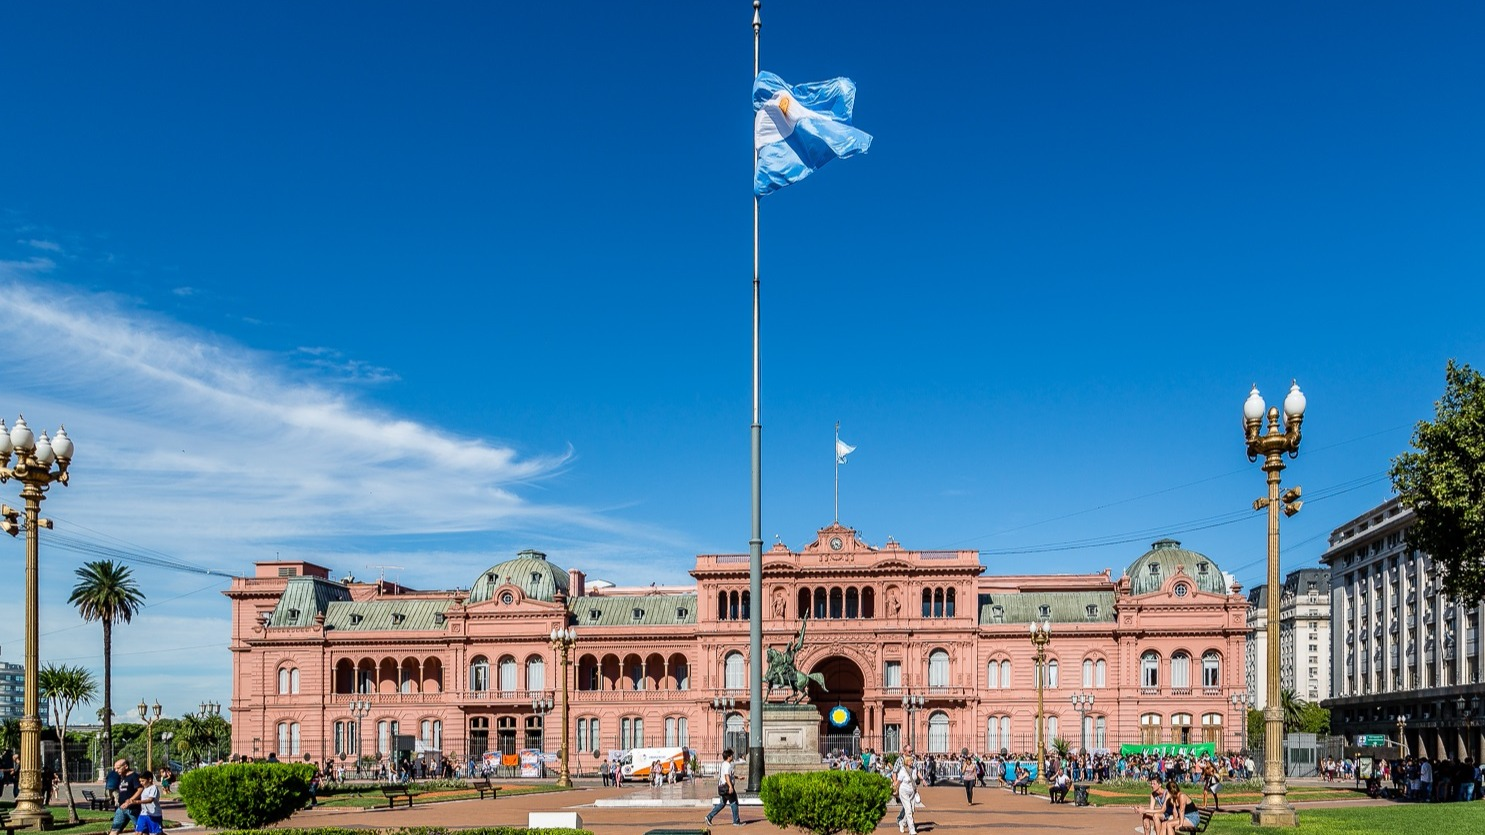 Spanning an area of 2,780,400 square km, Argentina is the 8th largest country in the world. It is the third richest country in South America in terms of GDP per capita at $20,170 USD and the second largest country in the continent by GDP (PPP) at $879.4 billion USD. The country is located in the continent's southern part where it is bordered by Chile, Brazil, Bolivia, Paraguay, and Uruguay. It has an extensive coastline along the Atlantic Ocean to the east. As of 2010, the country had a population of 40,117,096.The economy of Argentina is based on the country's rich natural resources, export-oriented agriculture, an educated population, and a diversified industrial sector. The economic performance of the country has gone through several ups and downs in the past few decades. Currently, it is classified as a middle emerging economy. High rates of inflation, unequal distribution of wealth, and a high technical debt are barriers to the economic growth of the nation. The leading industries in Venezuela include beverages, motor vehicles, and auto parts, leather, textiles, food processing, pharmaceuticals, cement, furniture, etc.